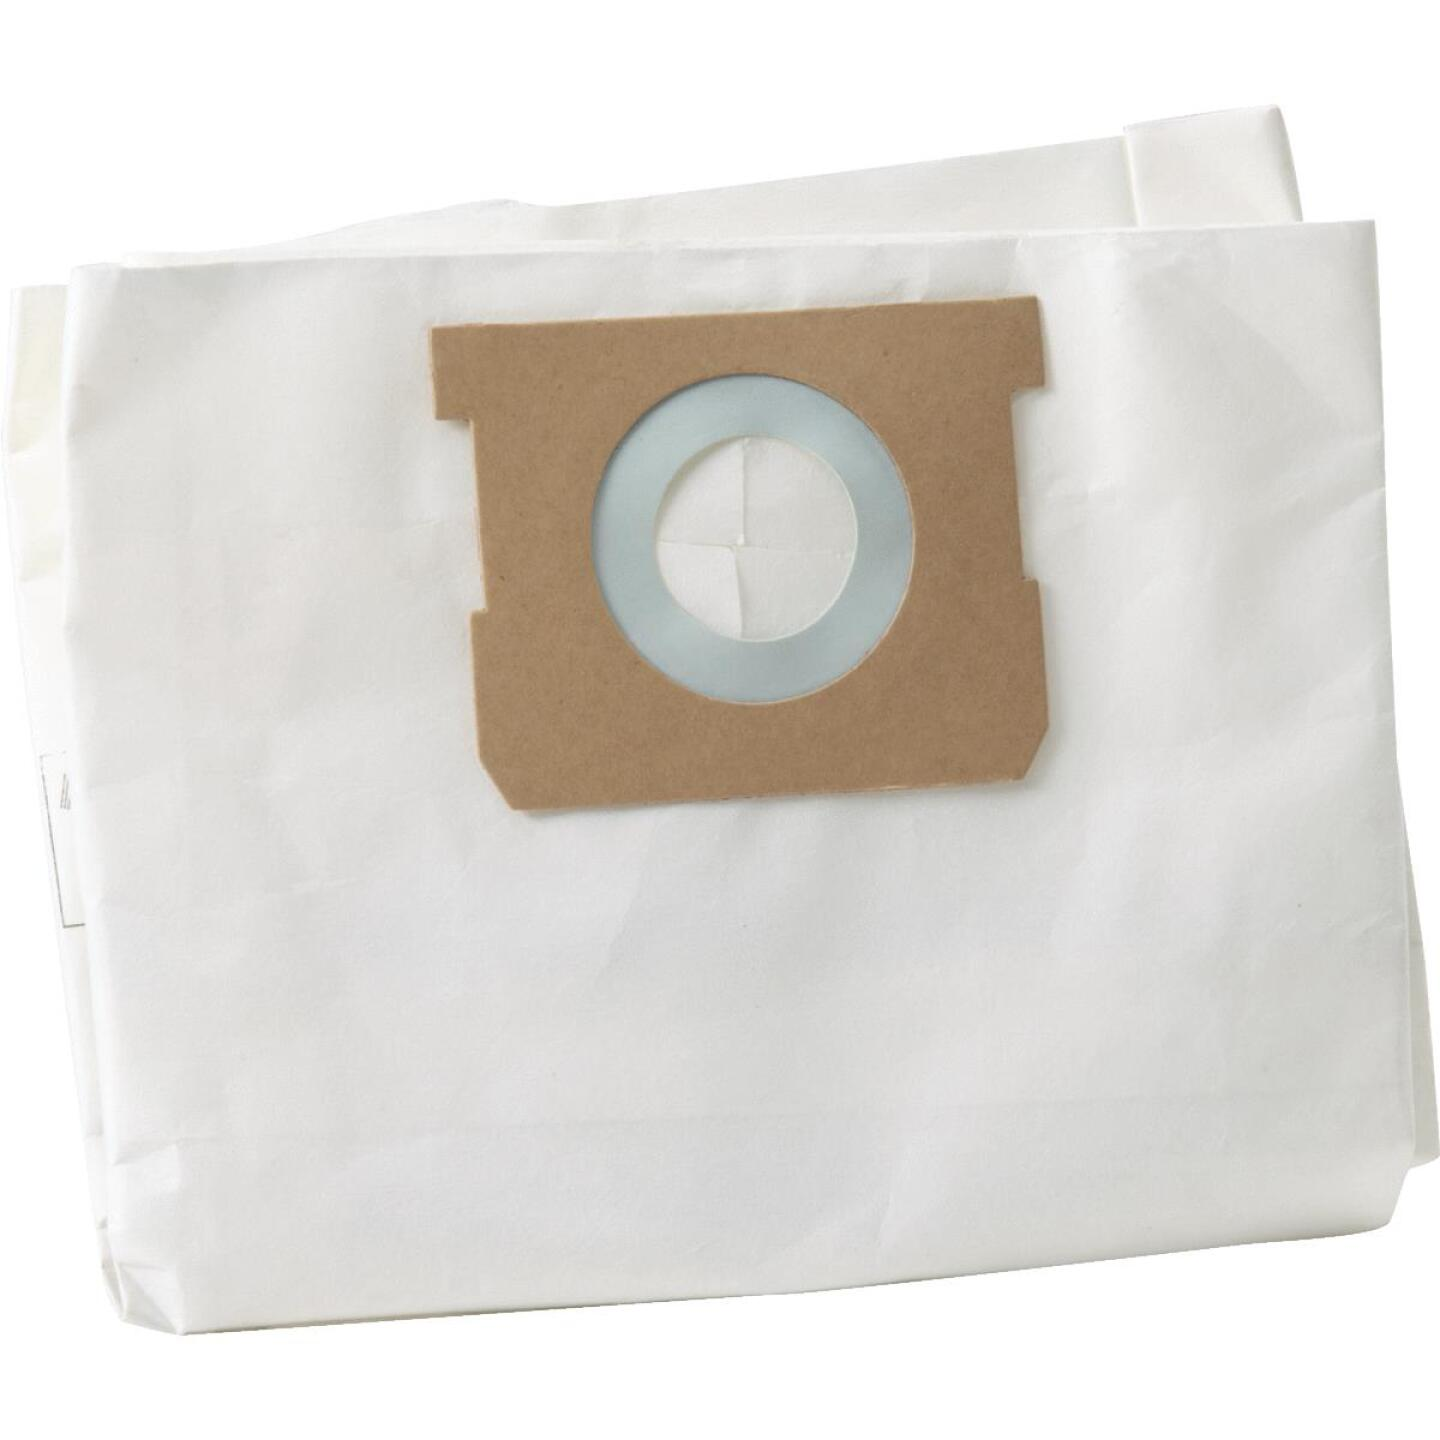 Channellock Paper Standard 5 to 6 Gal. Filter Vacuum Bag (3-Pack) Image 1